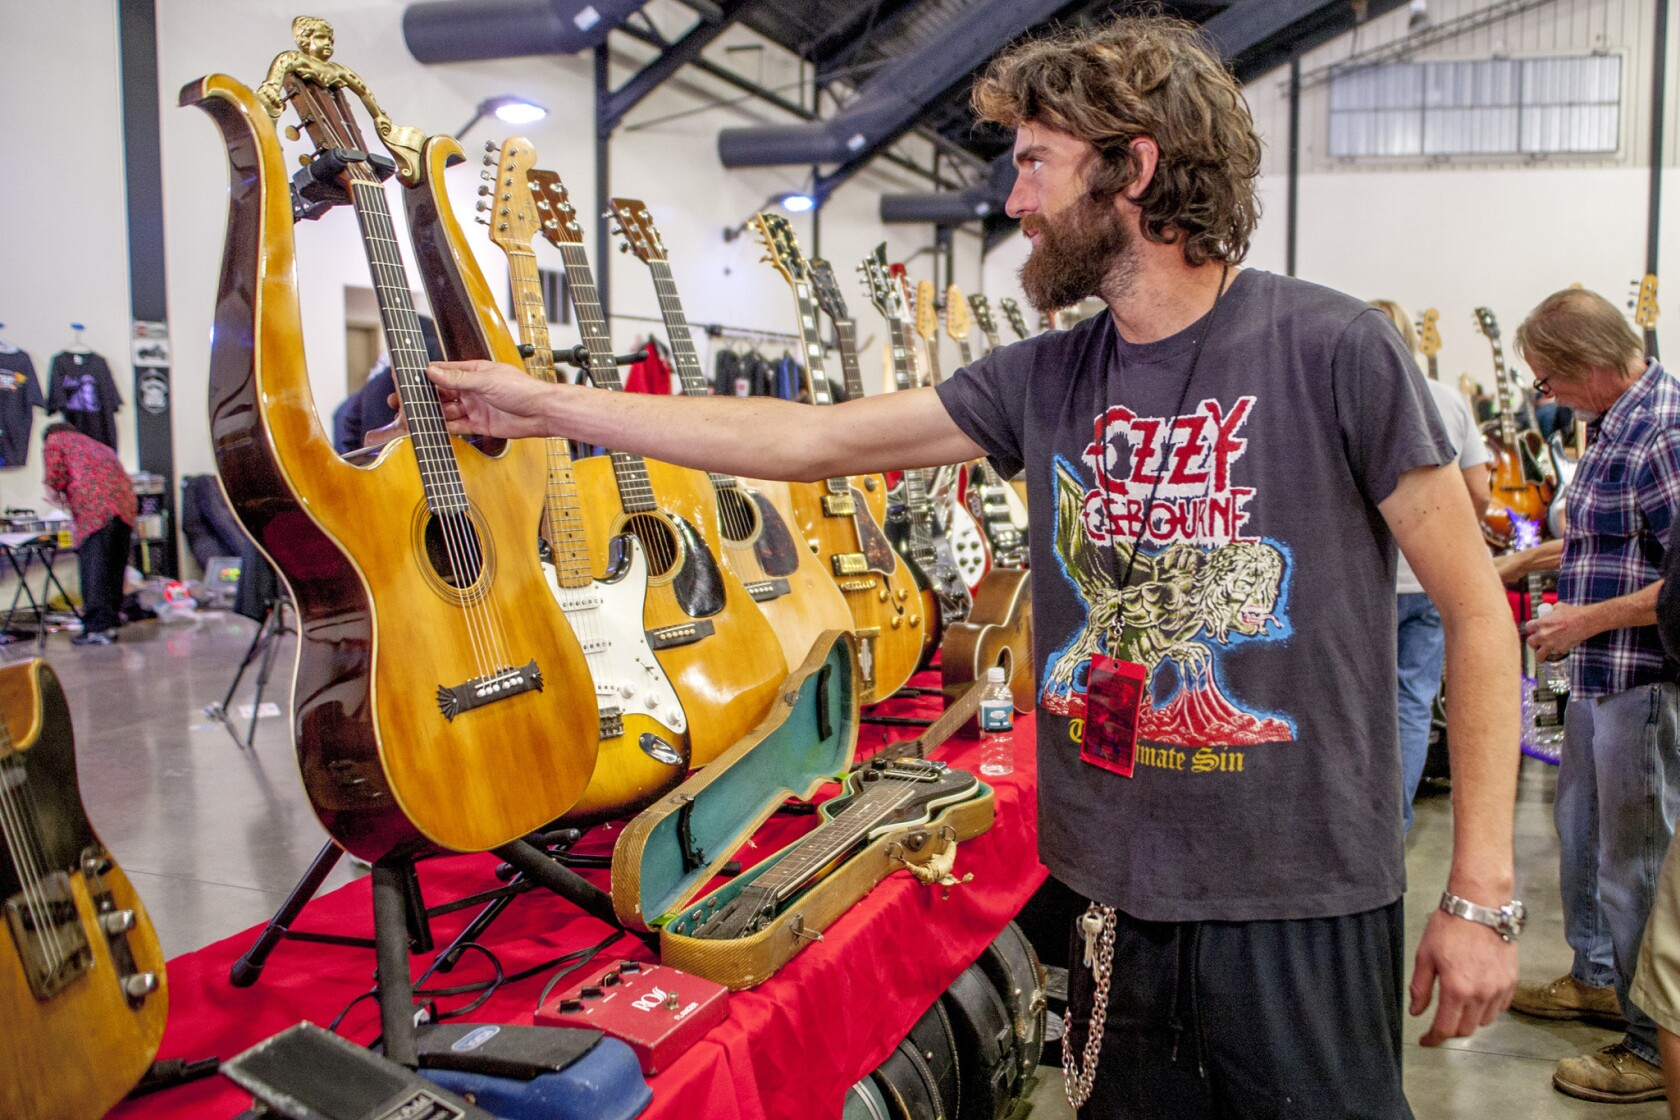 Guitar show strikes a chord at O C  fairgrounds - Los Angeles Times